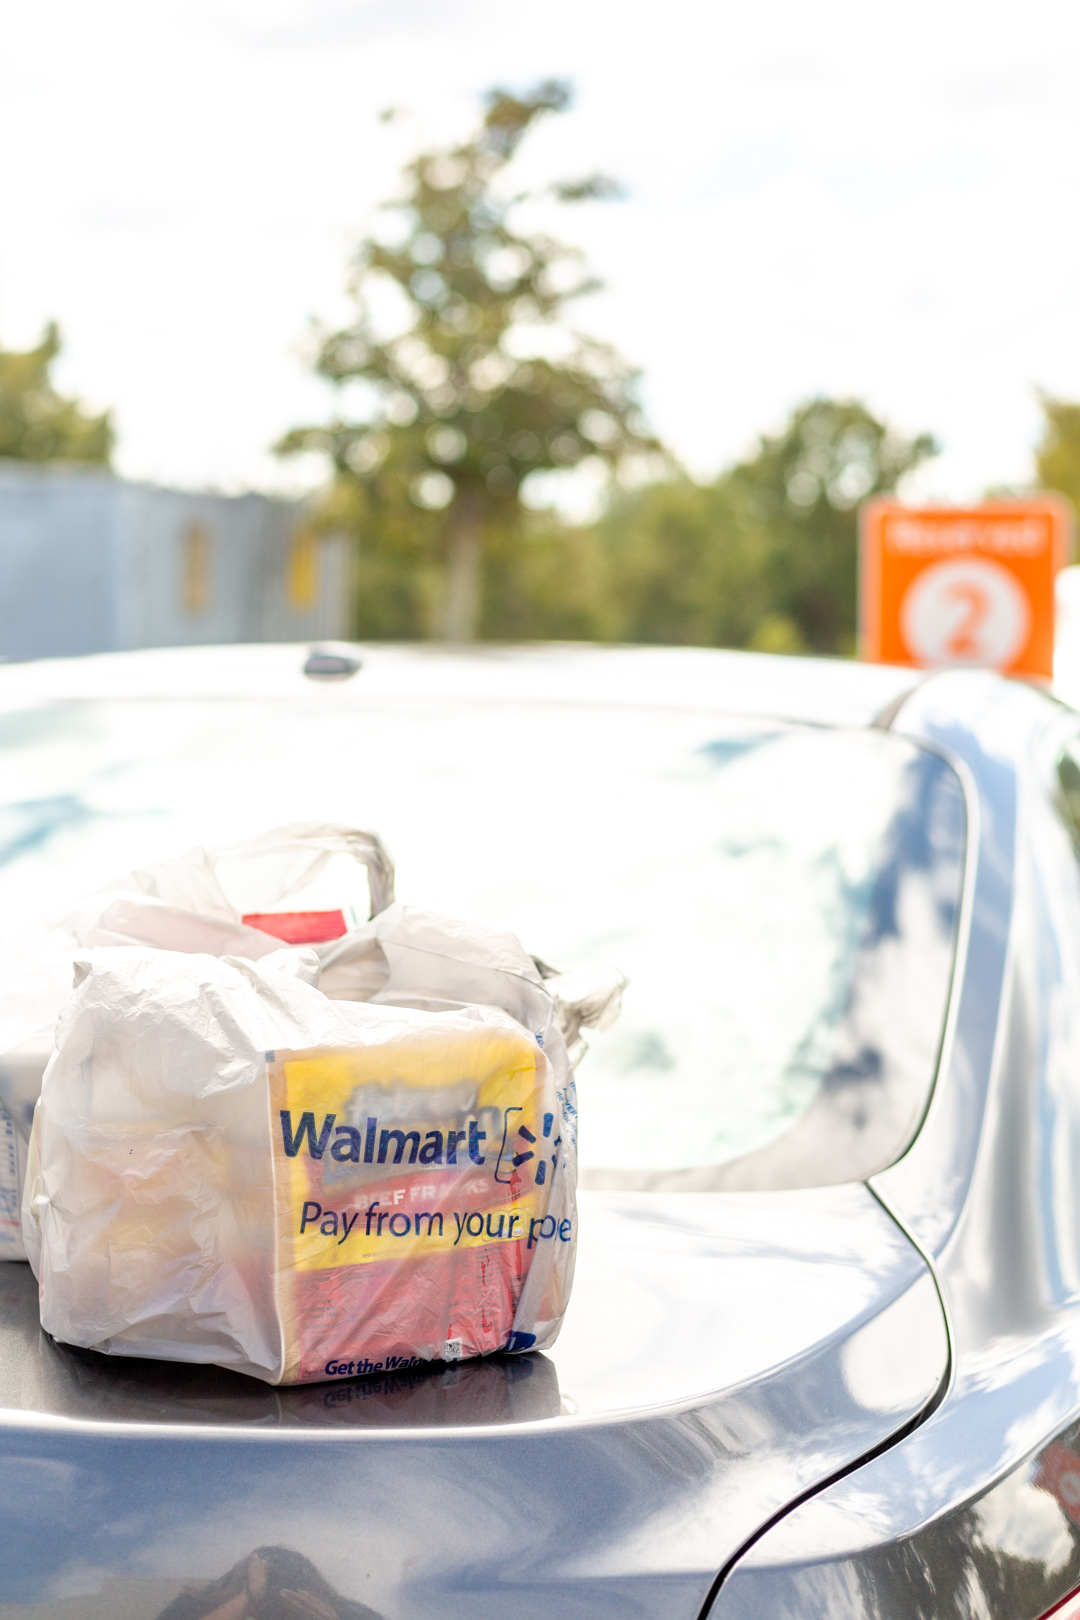 Walmart Online Grocery Pickup bags on top of a car